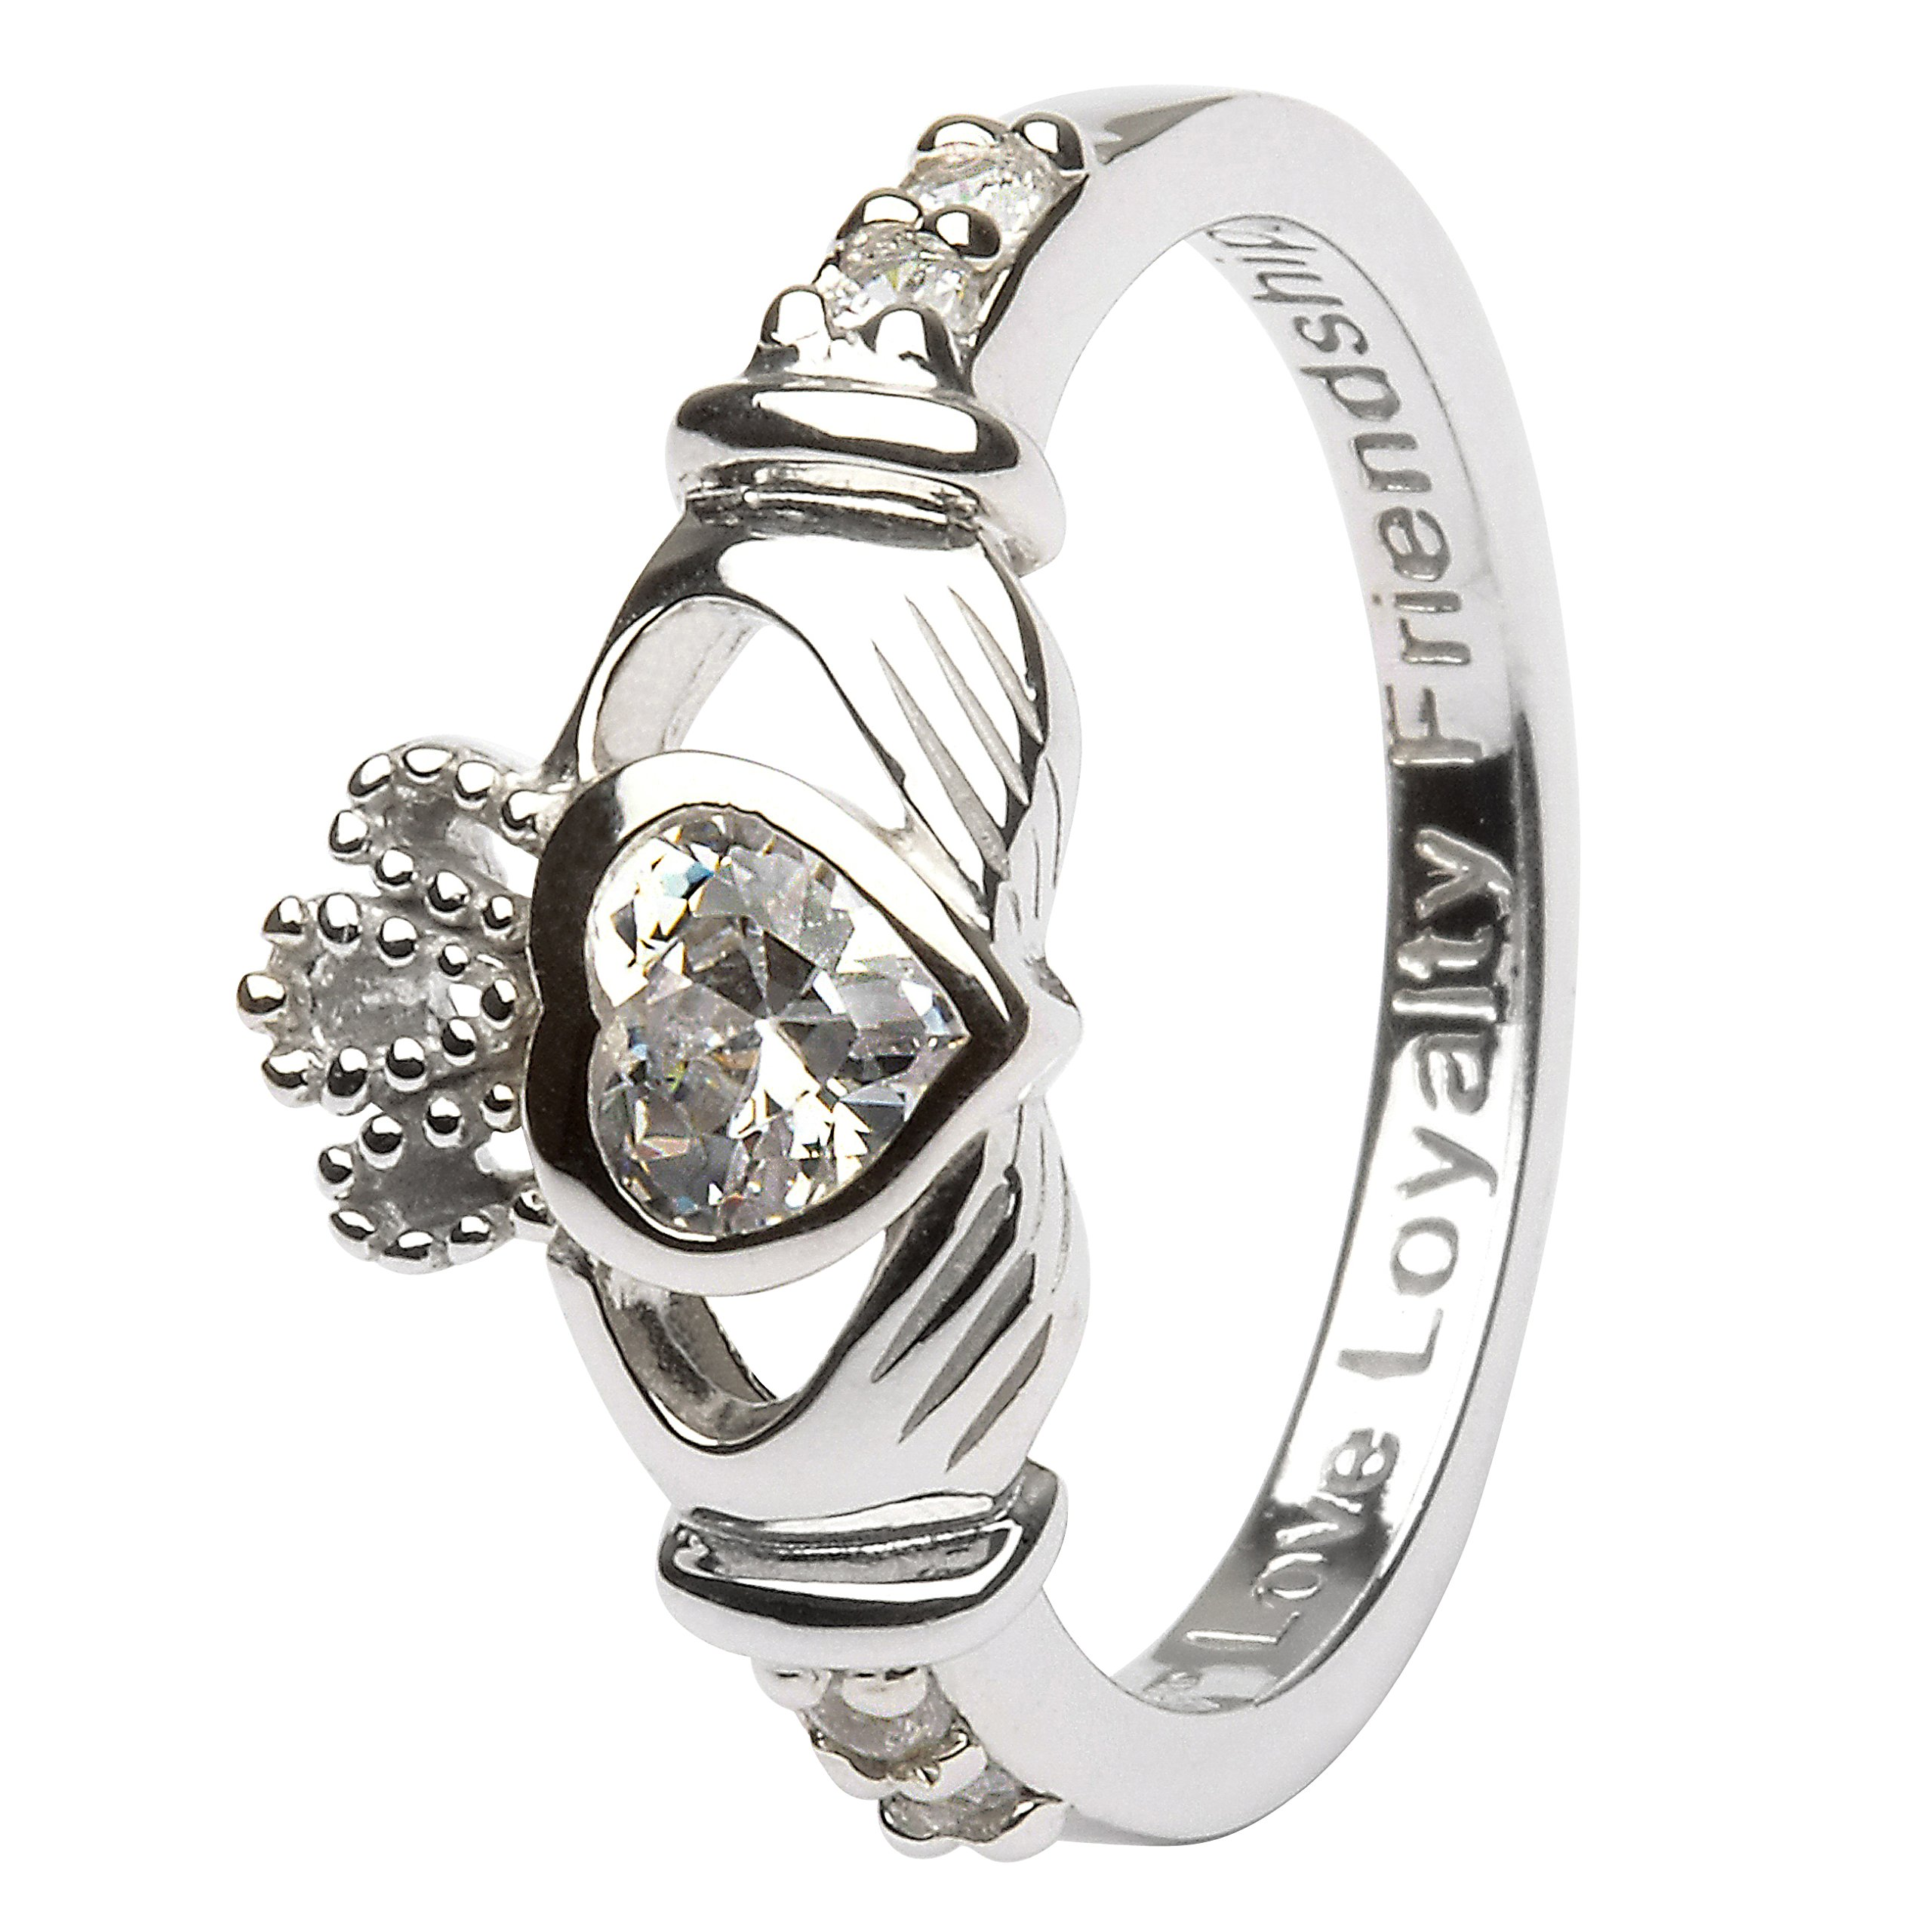 APRIL Birth Month Silver Claddagh Ring LS-SL90-4 - Size: 6 Made in Ireland.